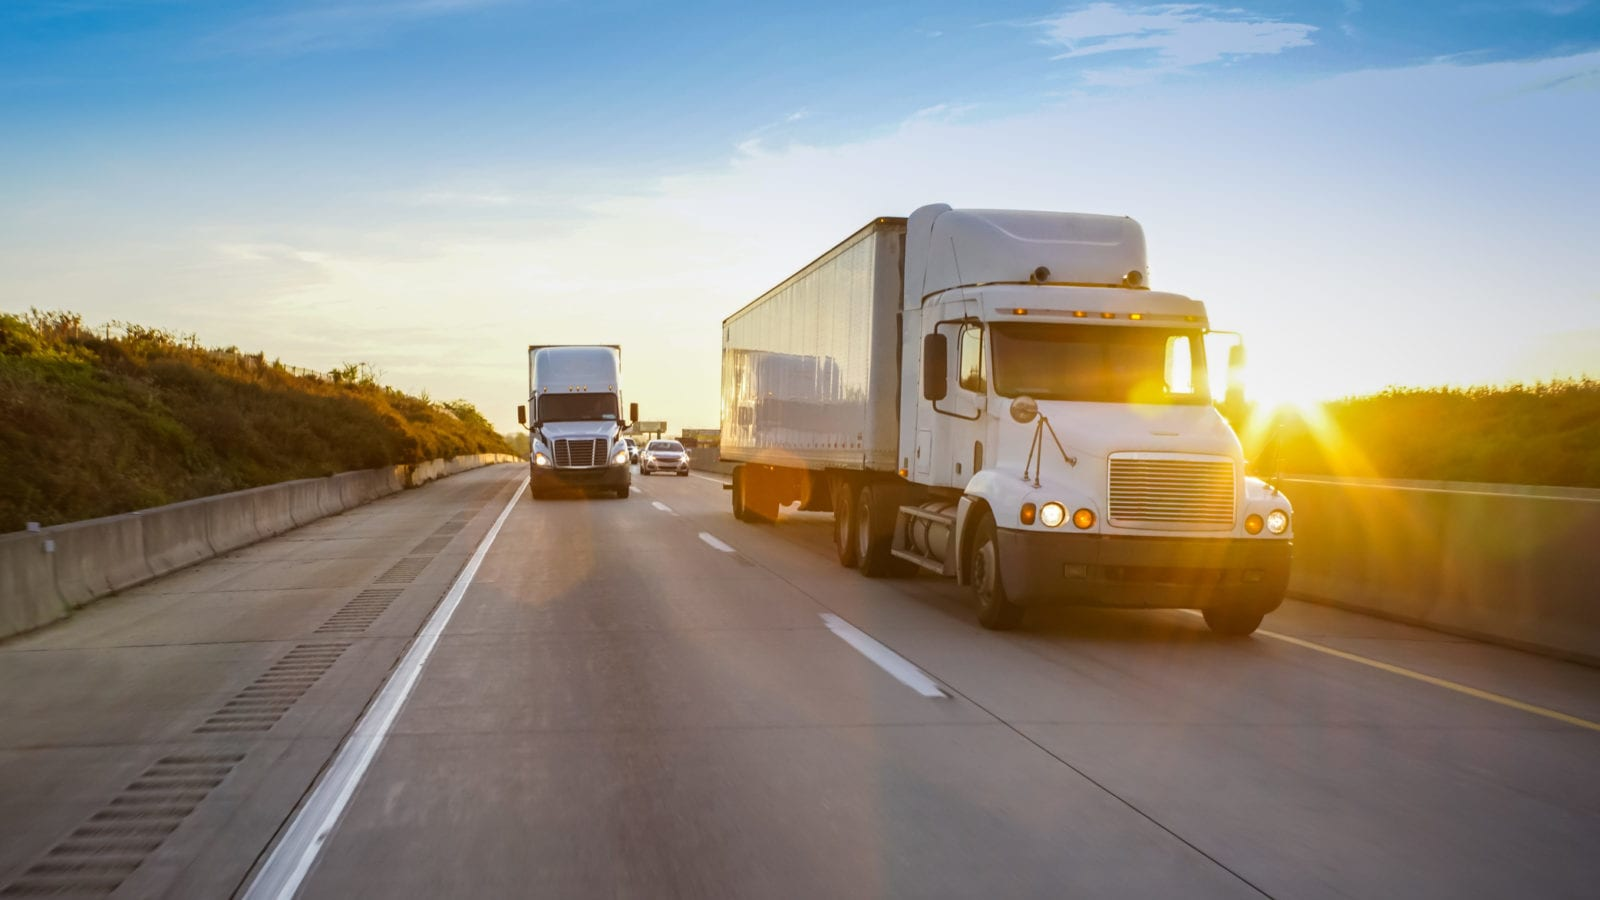 18-Wheelers Driving Stock Photo